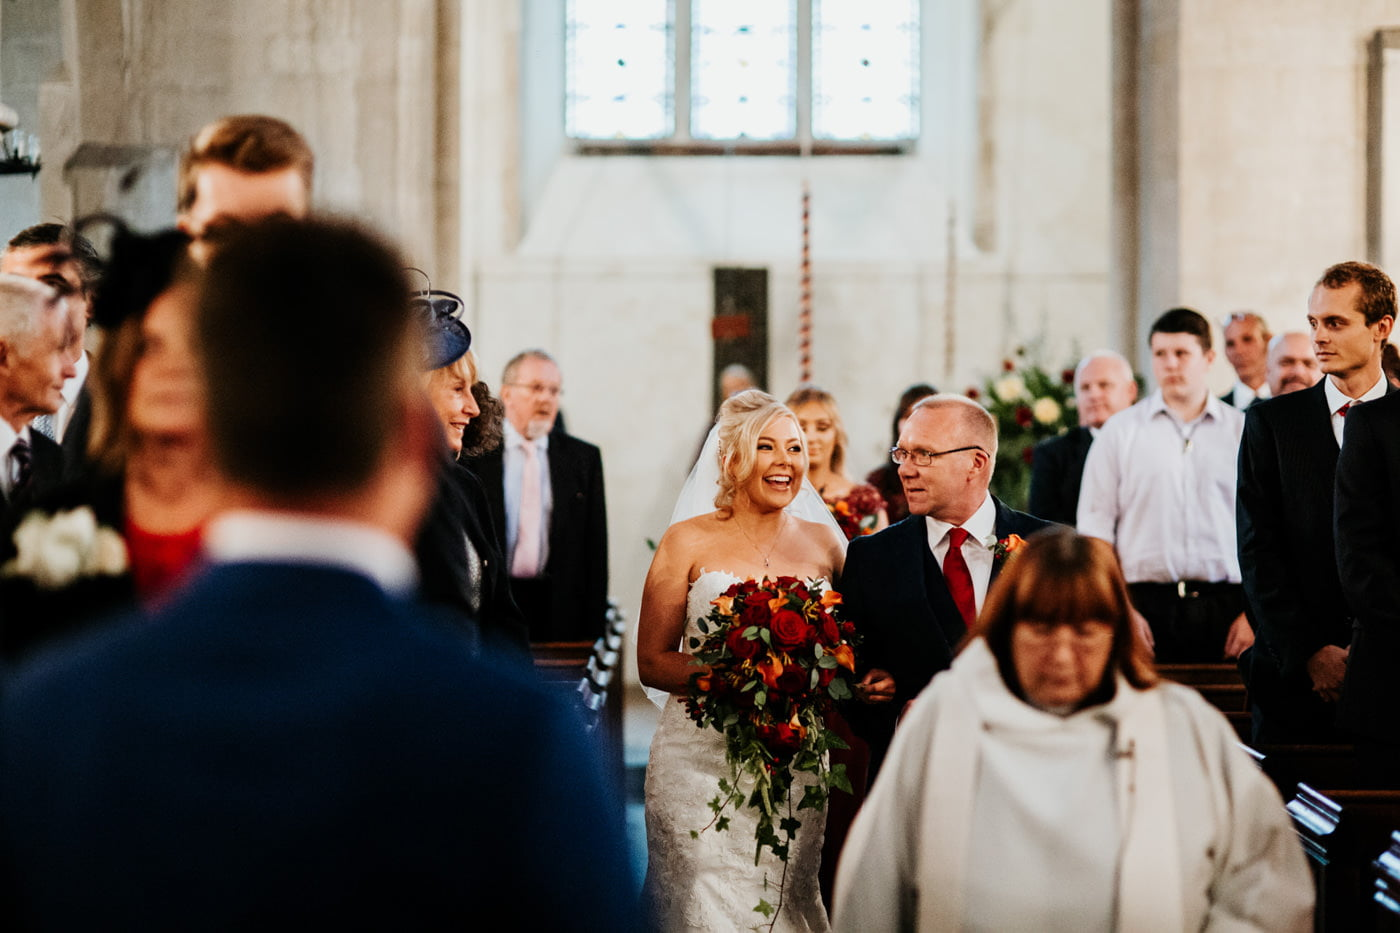 Natalie and Rob, Widbrook Grange, Wiltshire 39